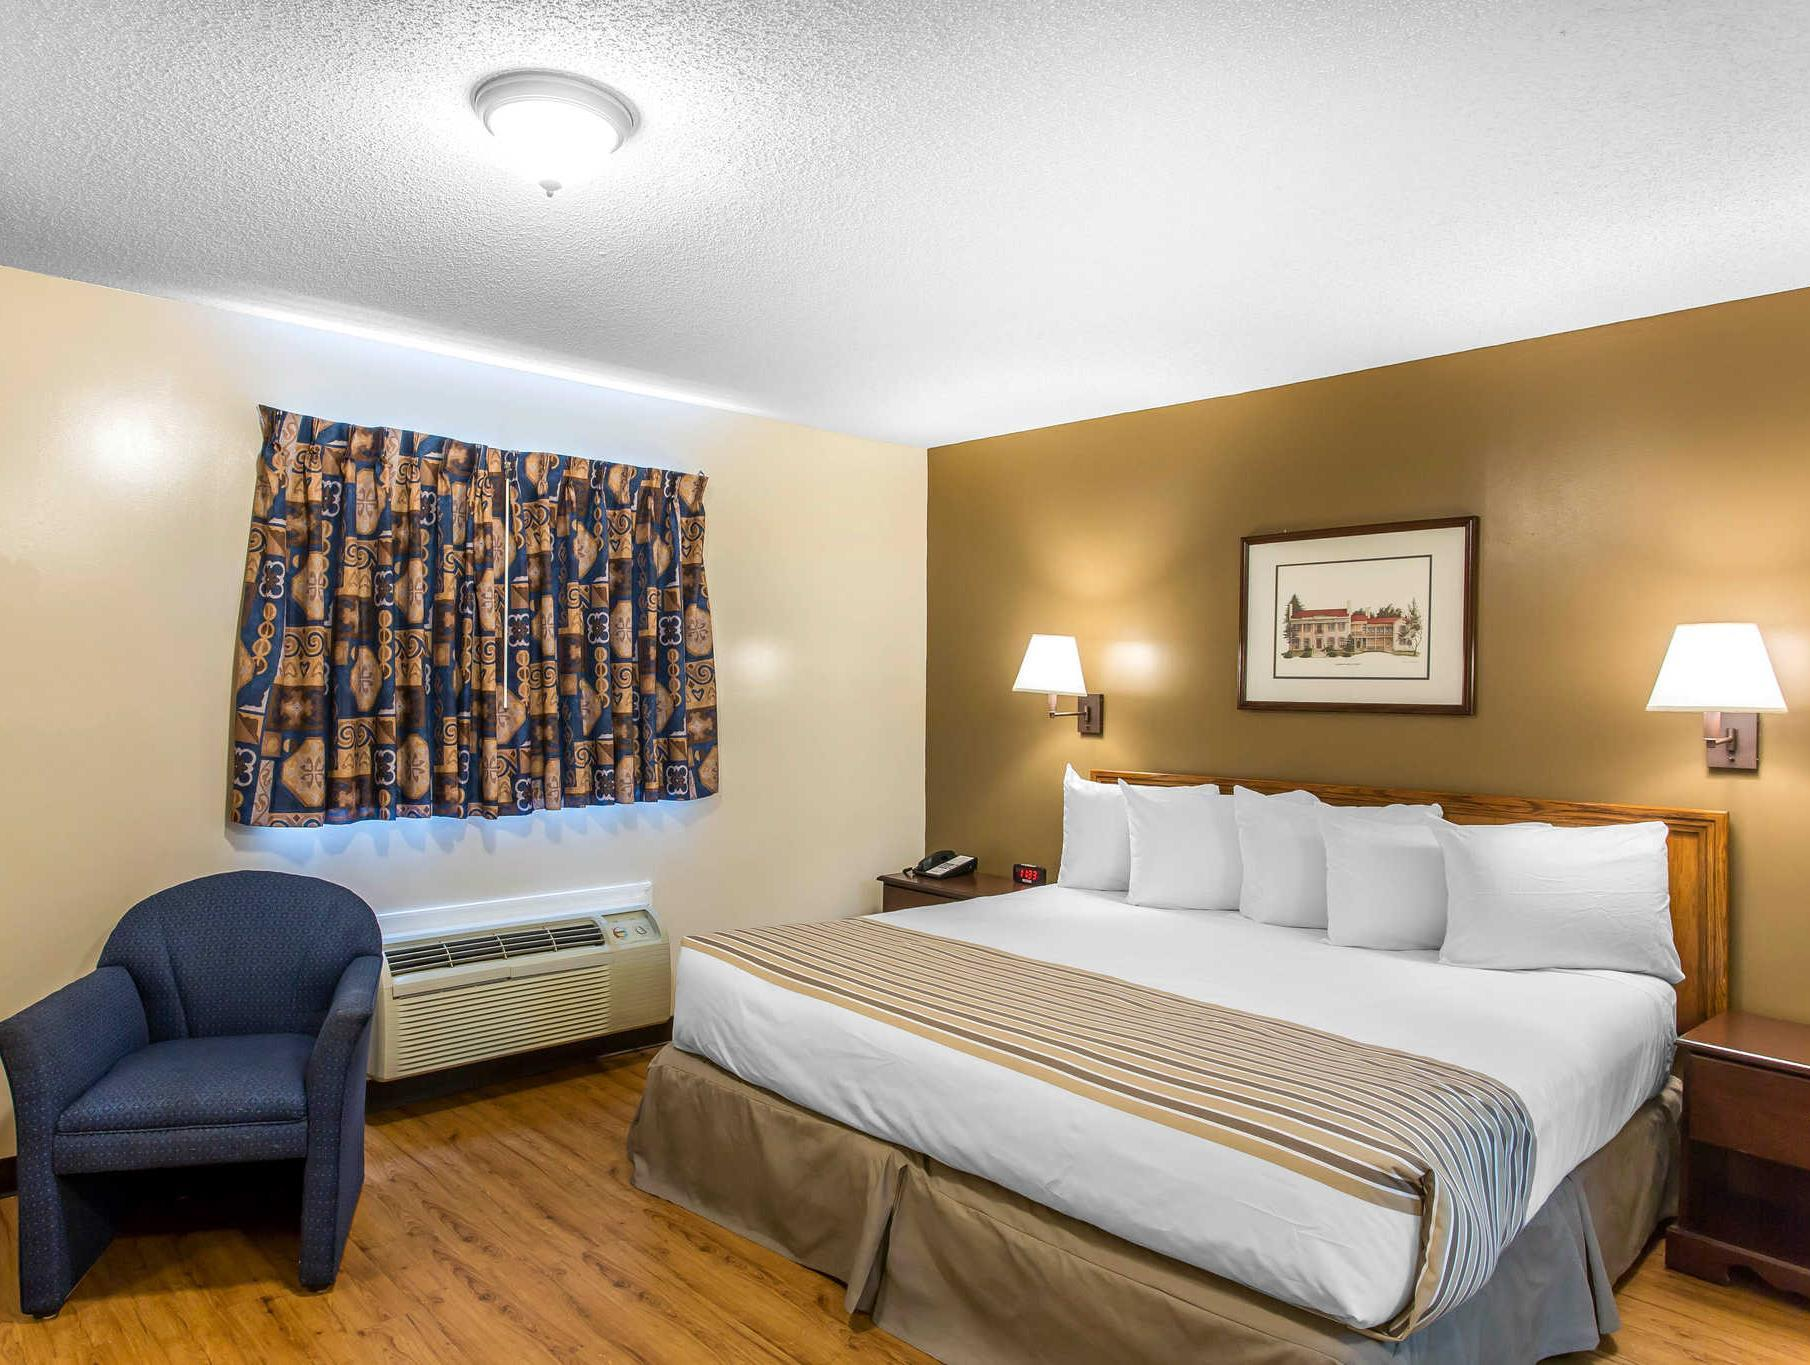 Suburban Extended Stay Hotel, Davidson